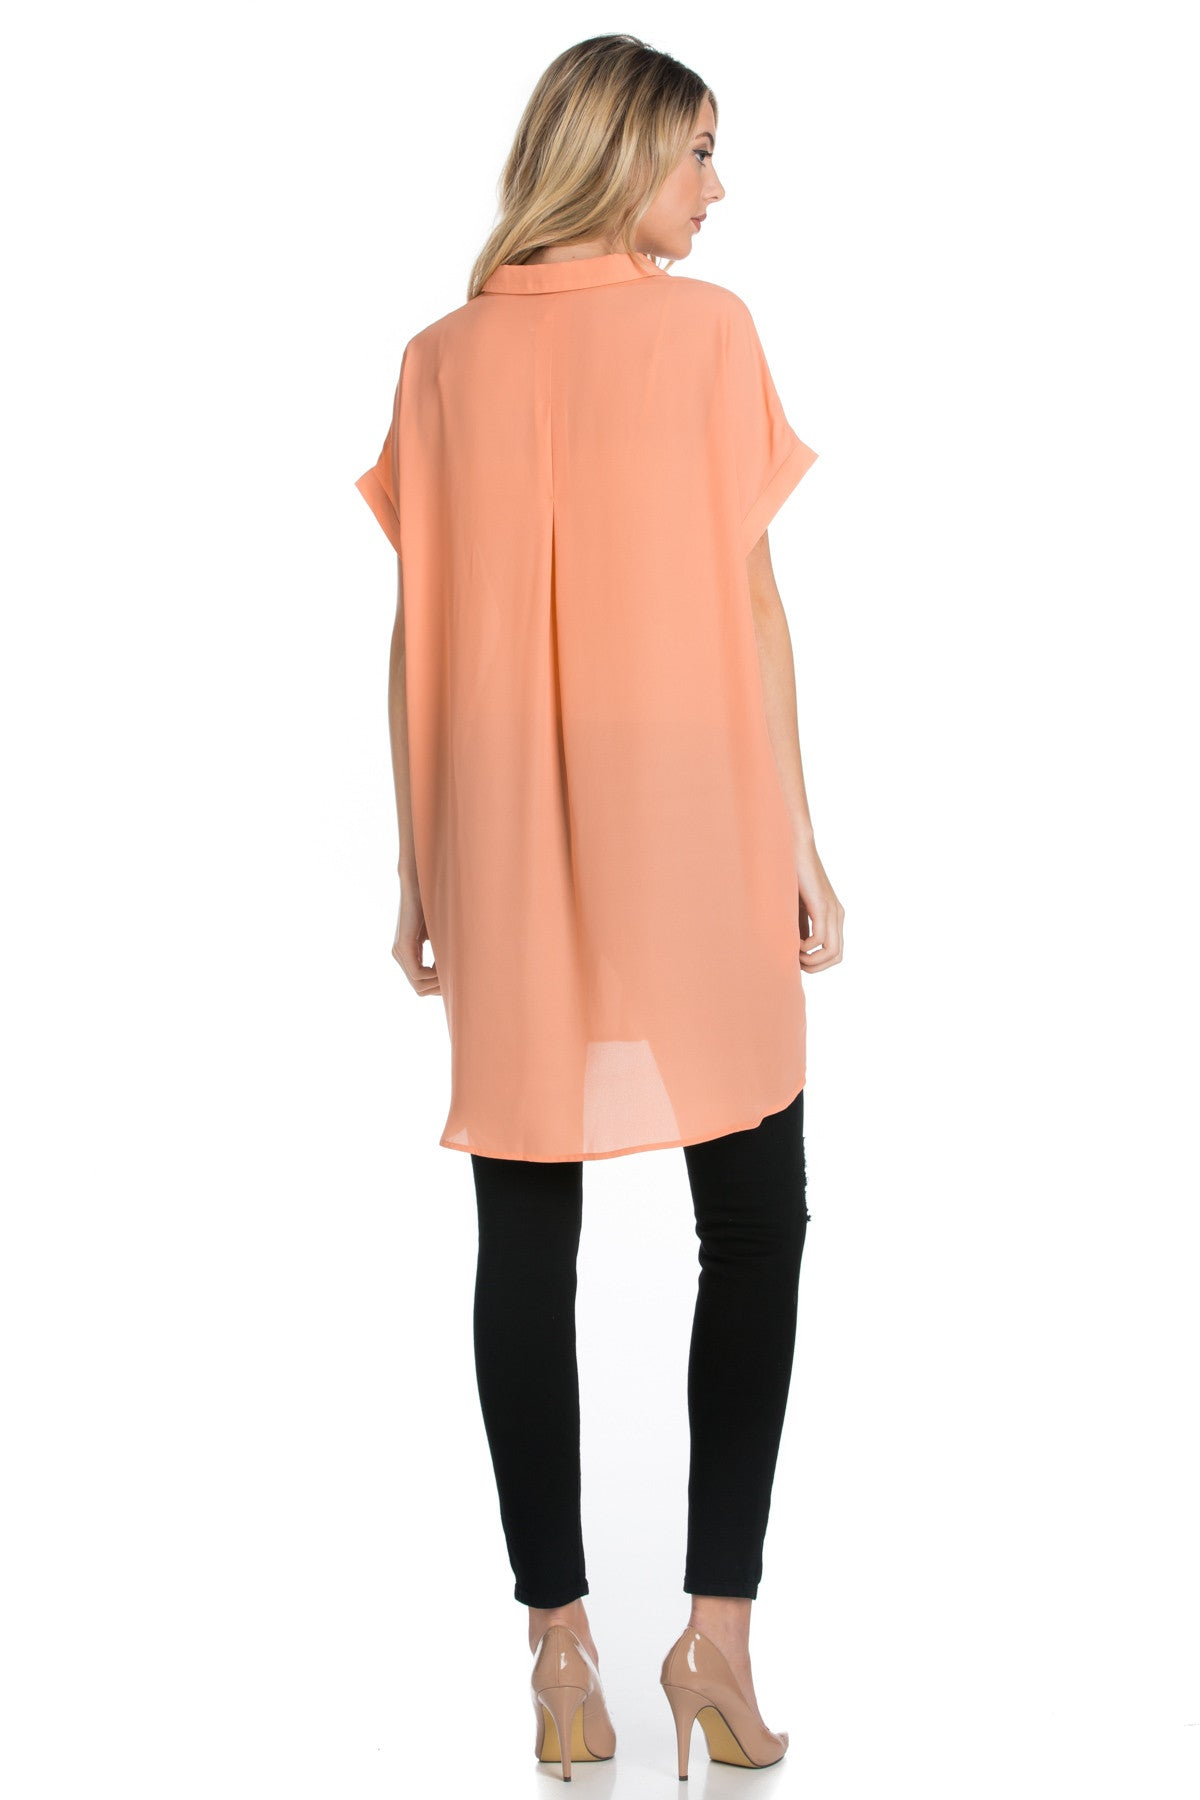 Short Sleeve Longline Button Down Chiffon Top in Peachy - Tops - My Yuccie - 3